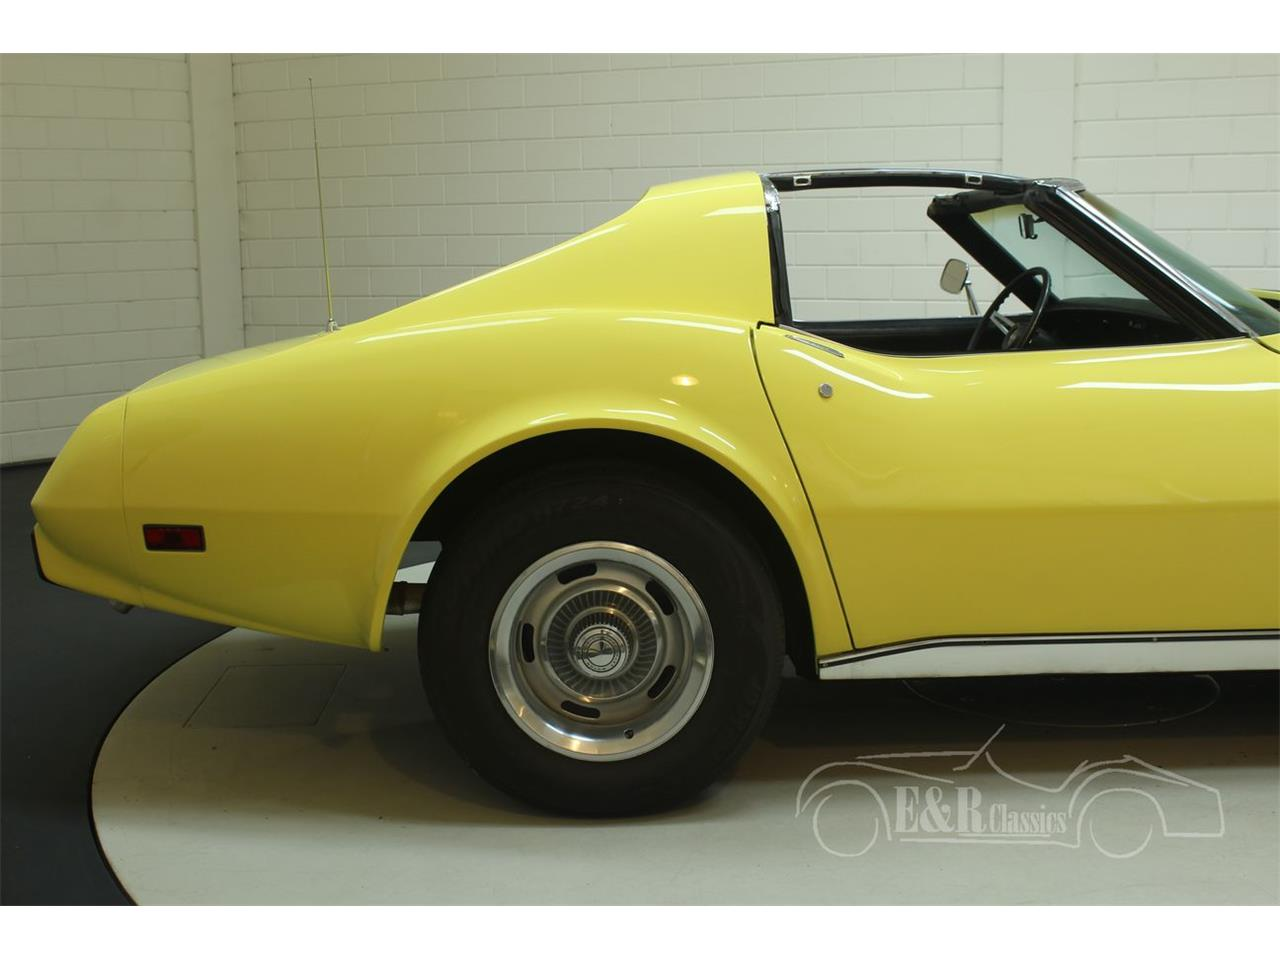 Large Picture of 1974 Corvette - $33,500.00 Offered by E & R Classics - Q3R0